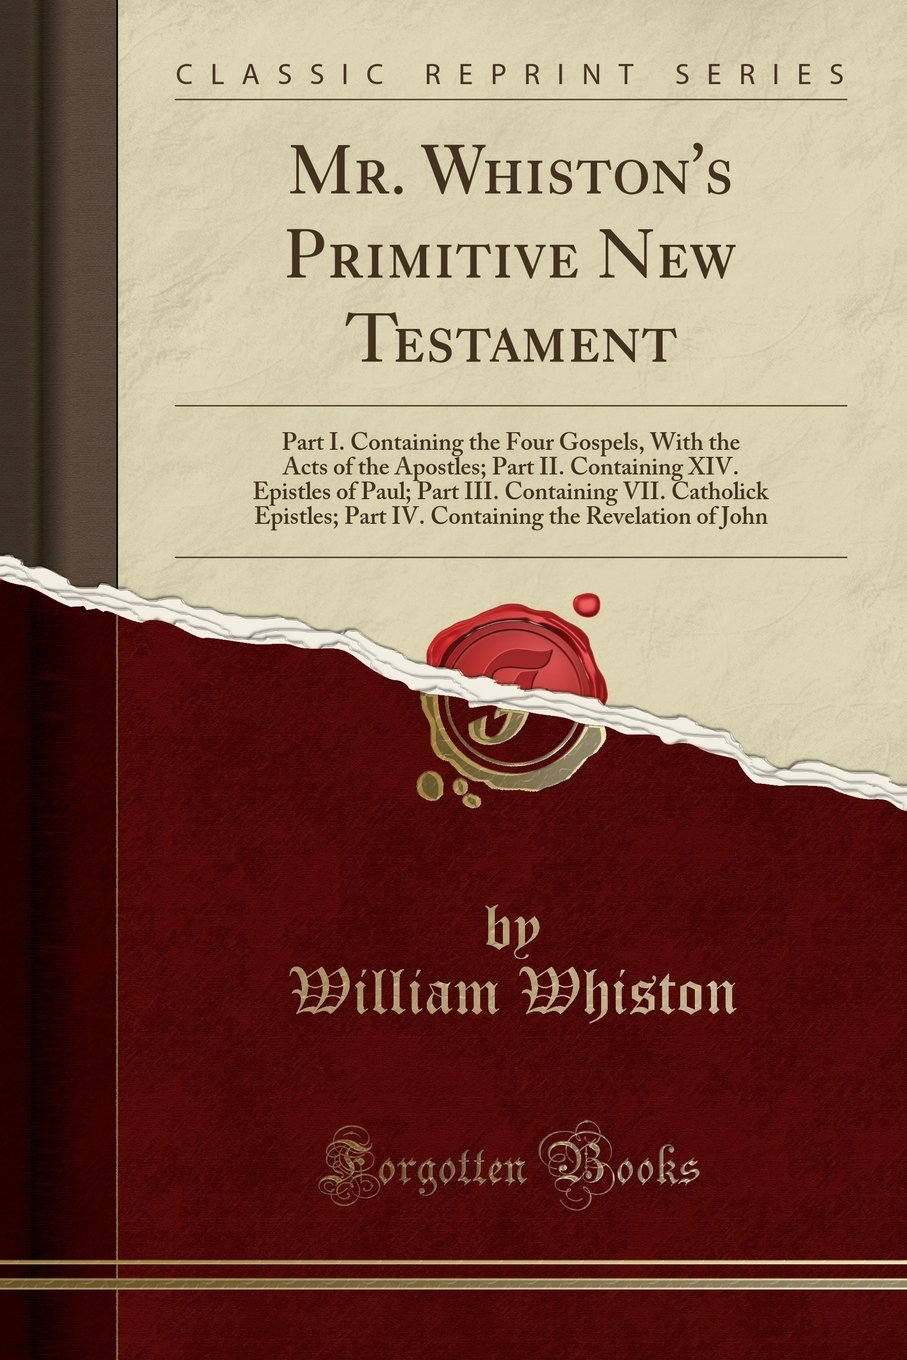 Mr. Whiston's Primitive New Testament: Part I. Containing the Four Gospels, With the Acts of the Apostles; Part II. Containing XIV. Epistles of Paul; ... Part IV. Containing the Revelation of John pdf epub